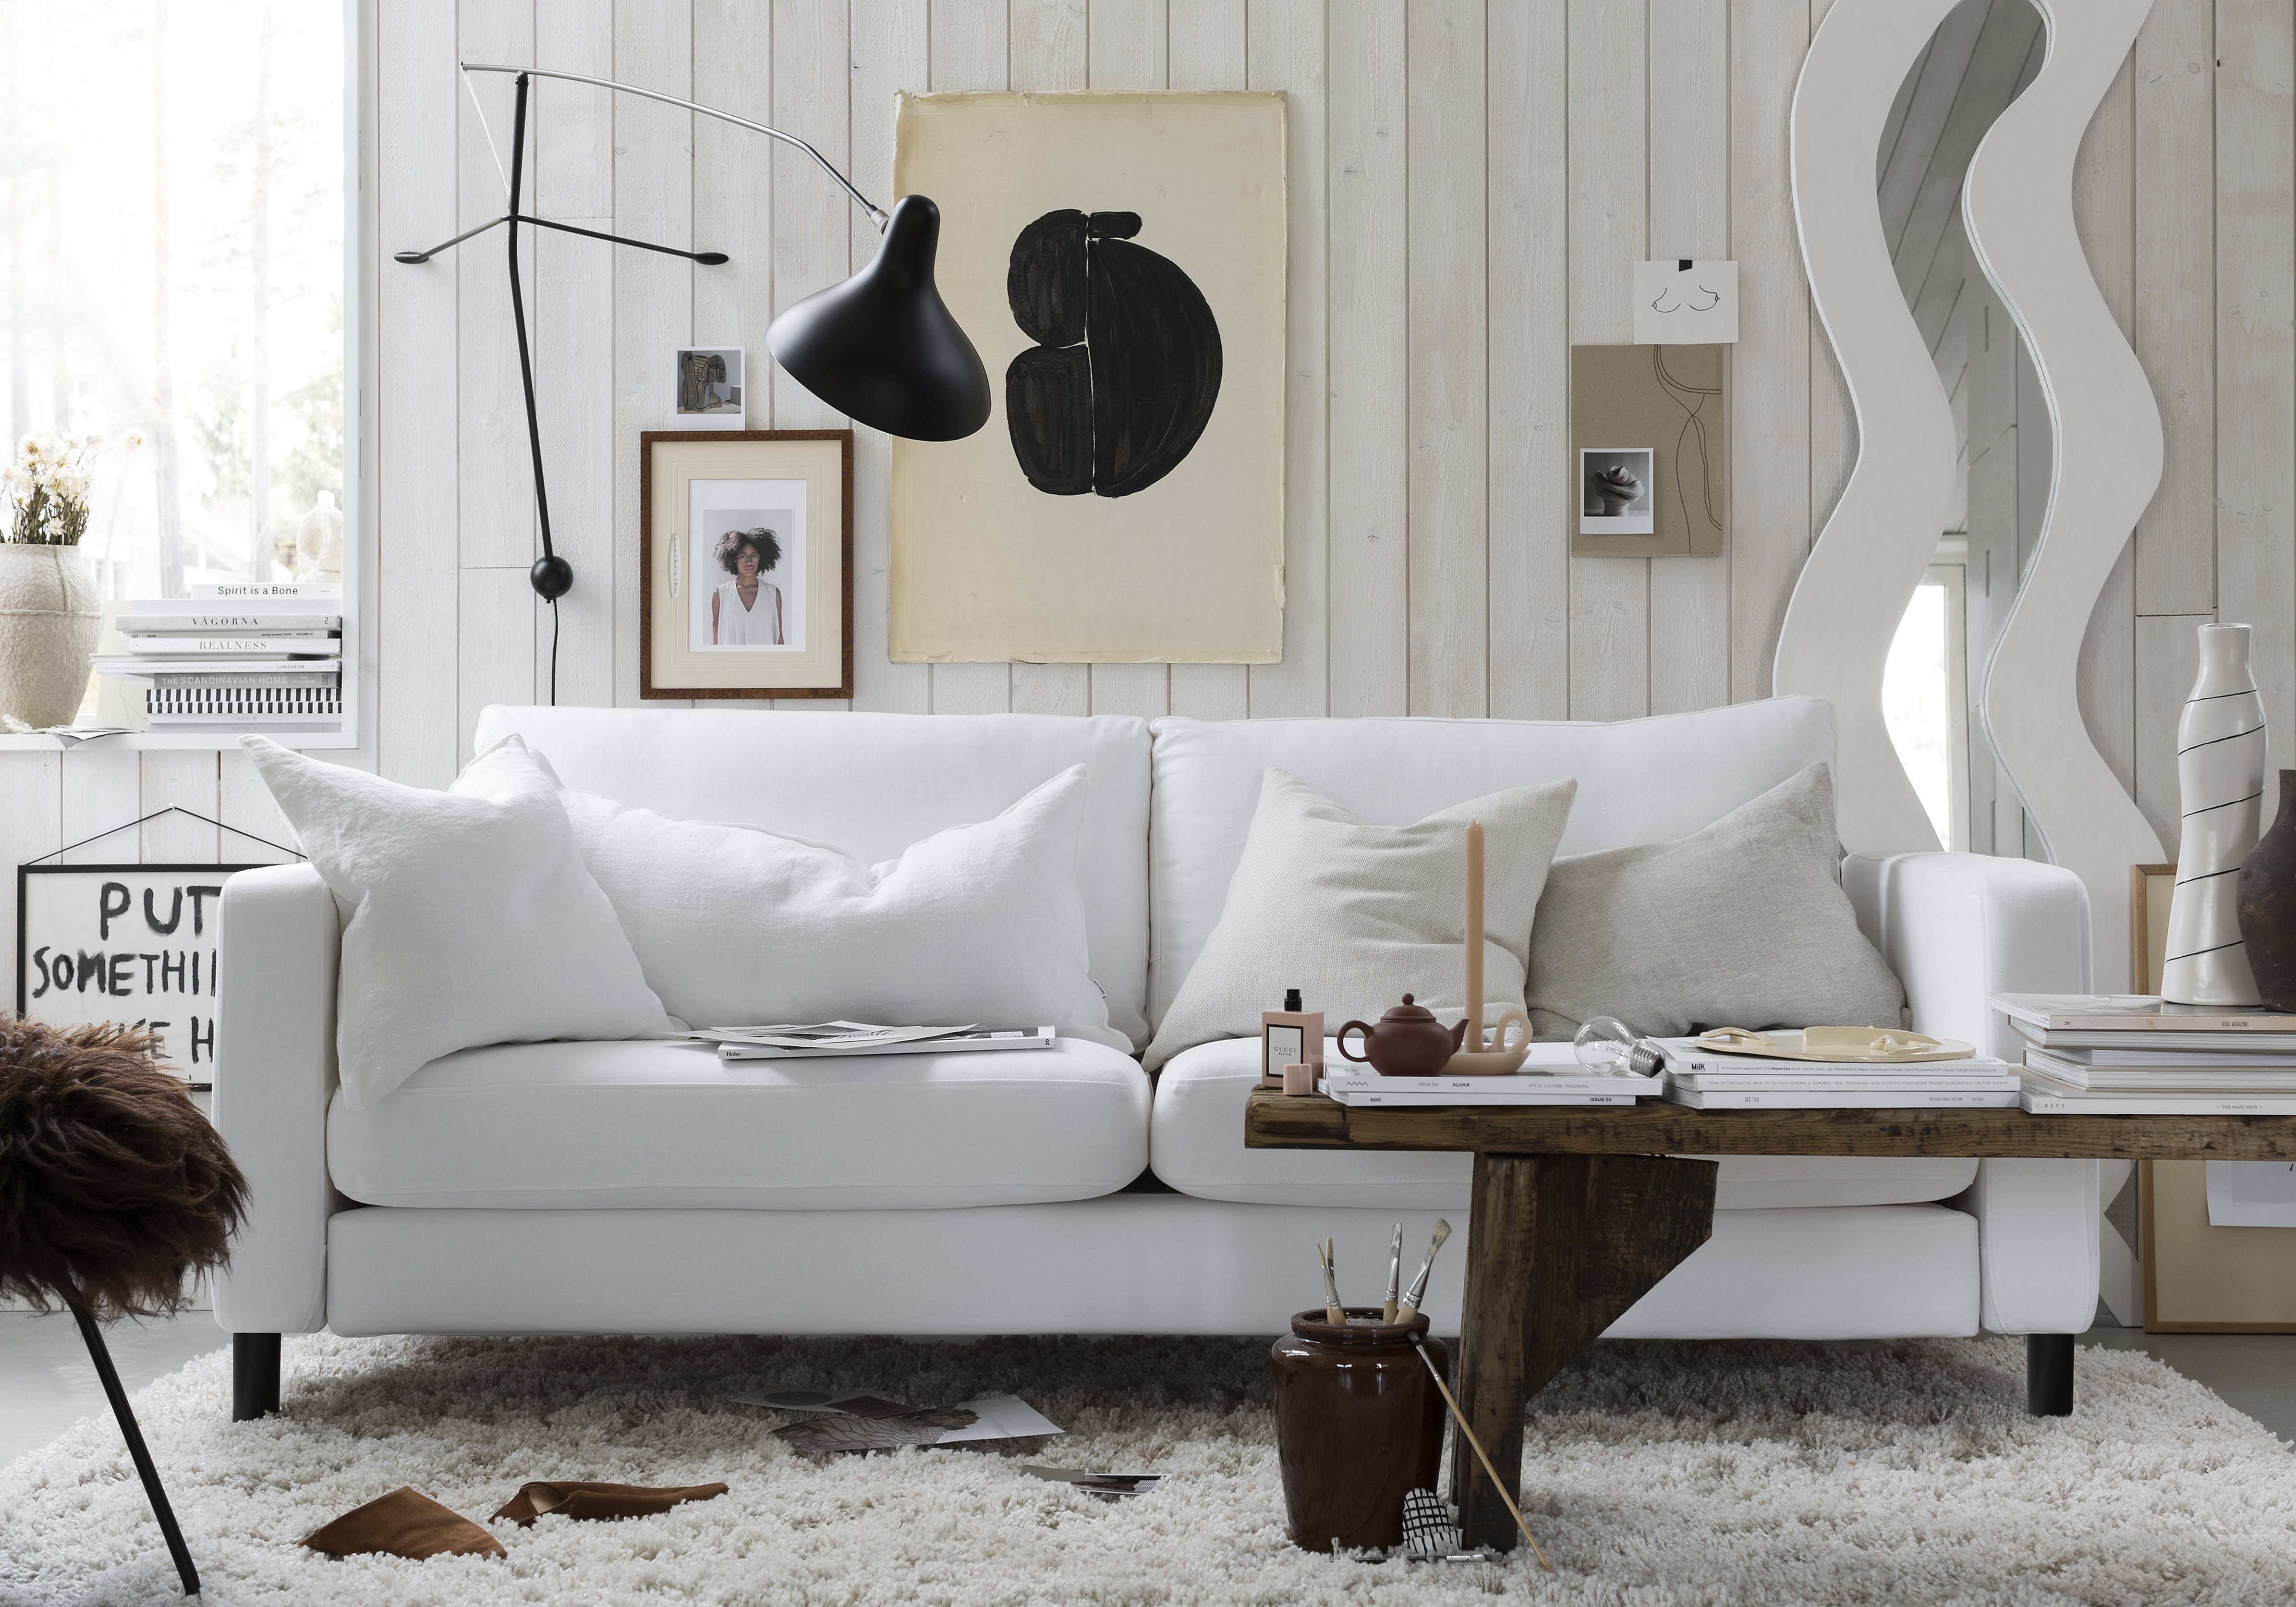 Fantastic 3 Tips For Cleaning And Caring For White Sofas And Furniture Dailytribune Chair Design For Home Dailytribuneorg